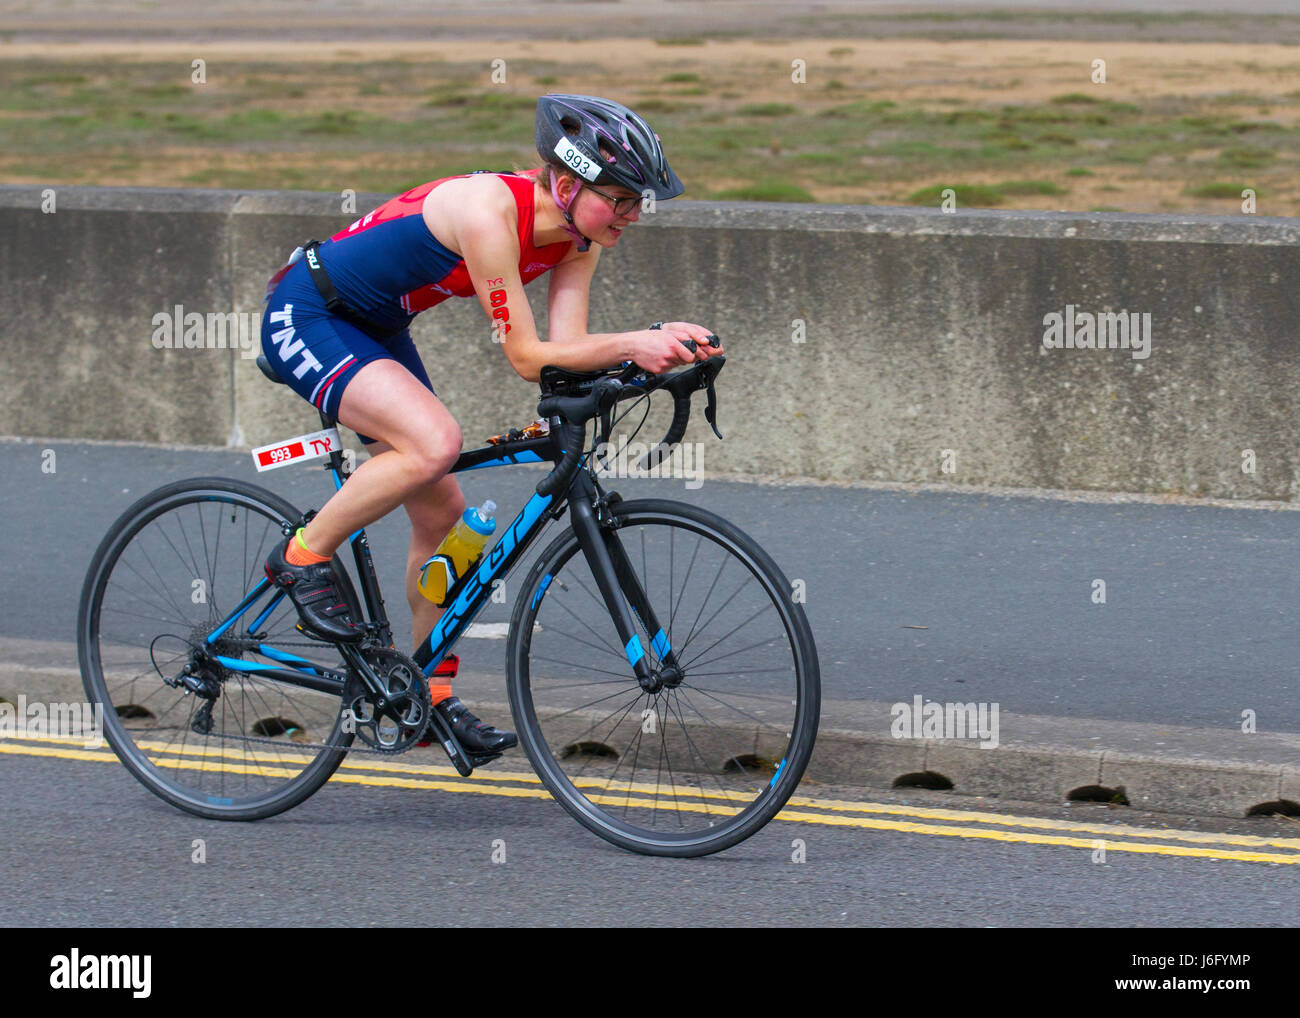 Southport, Merseyside, UK.  1500 competitors take part in the gruelling British Triathlon Major event in the resort - Stock Image